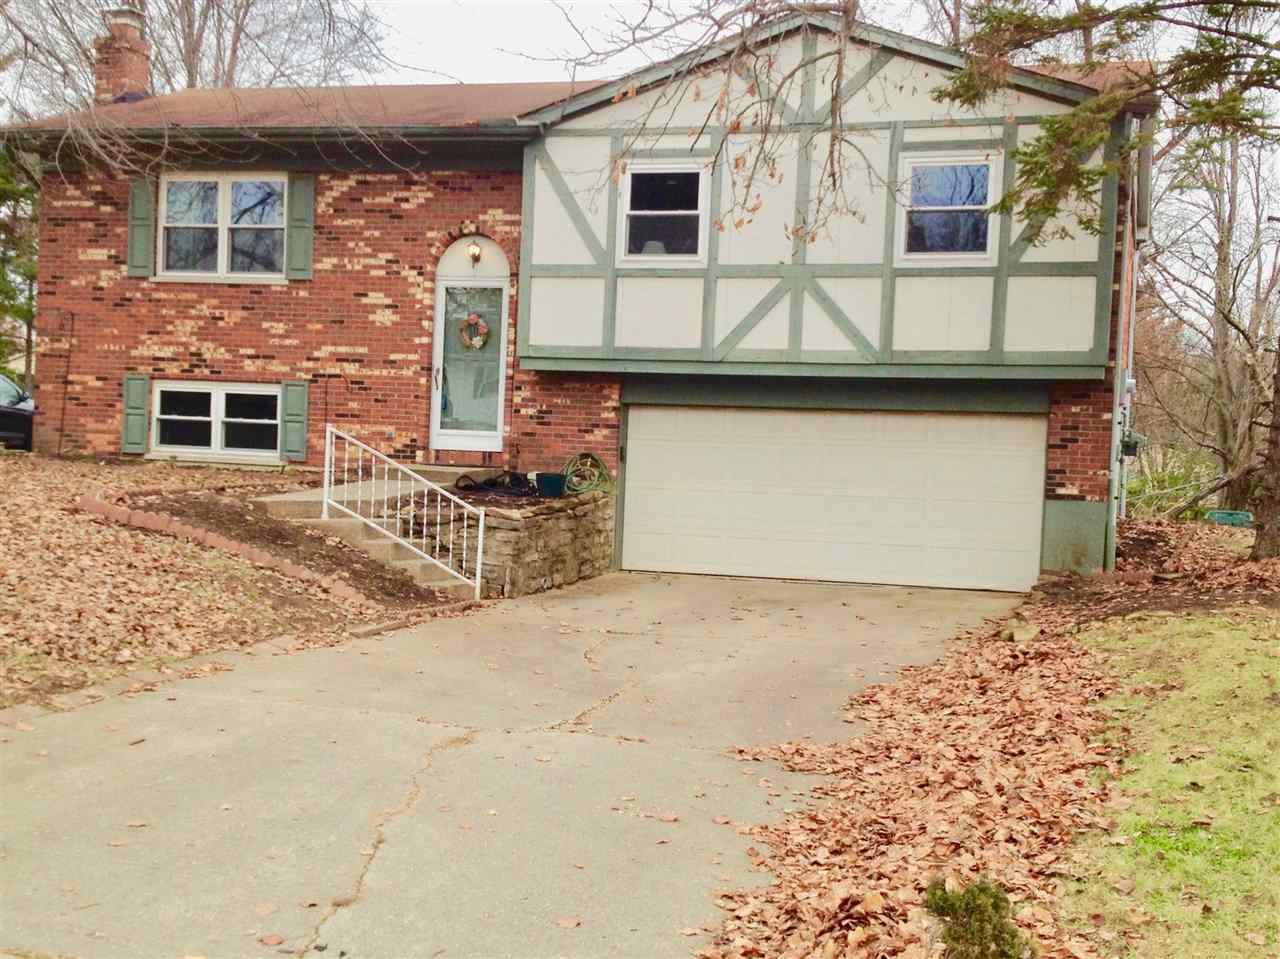 Photo 1 for 834 WESLEY Dr Villa Hills, KY 41017